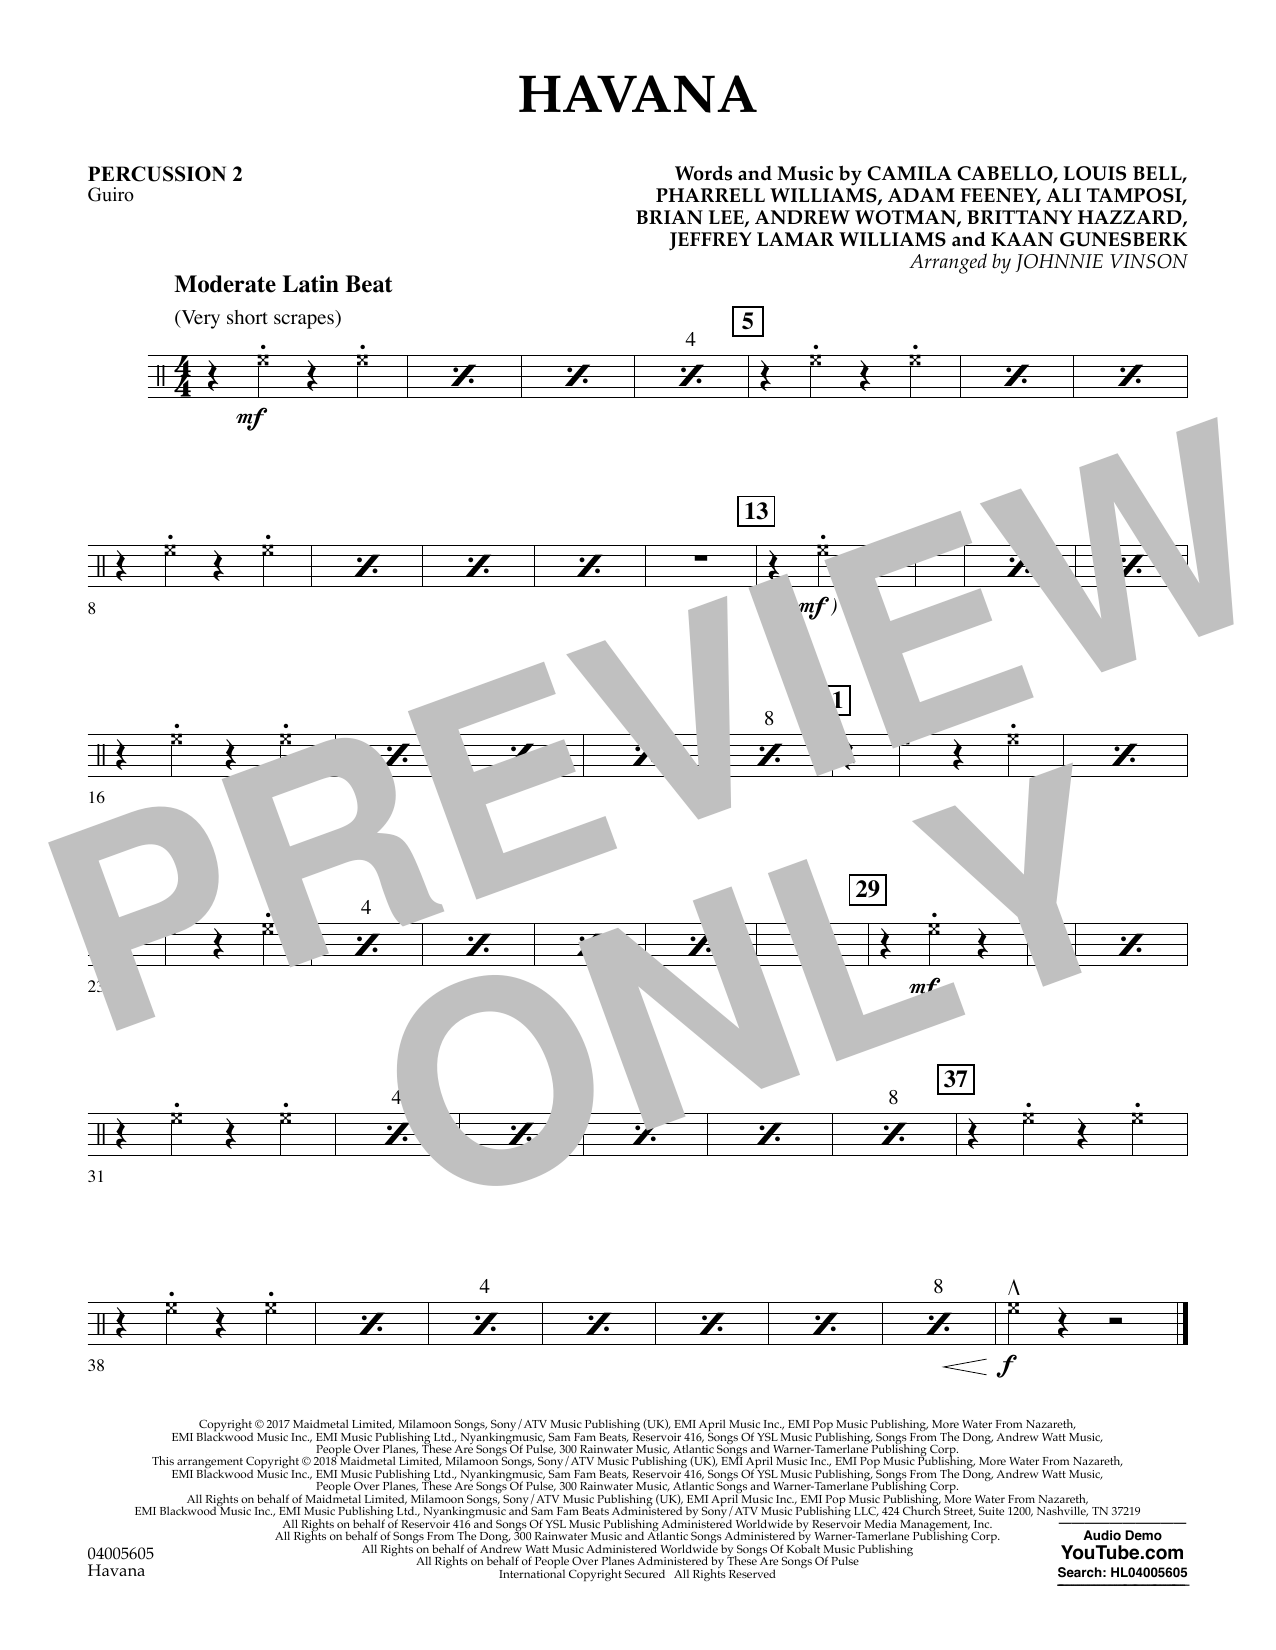 Havana - Percussion 2 atStanton's Sheet Music